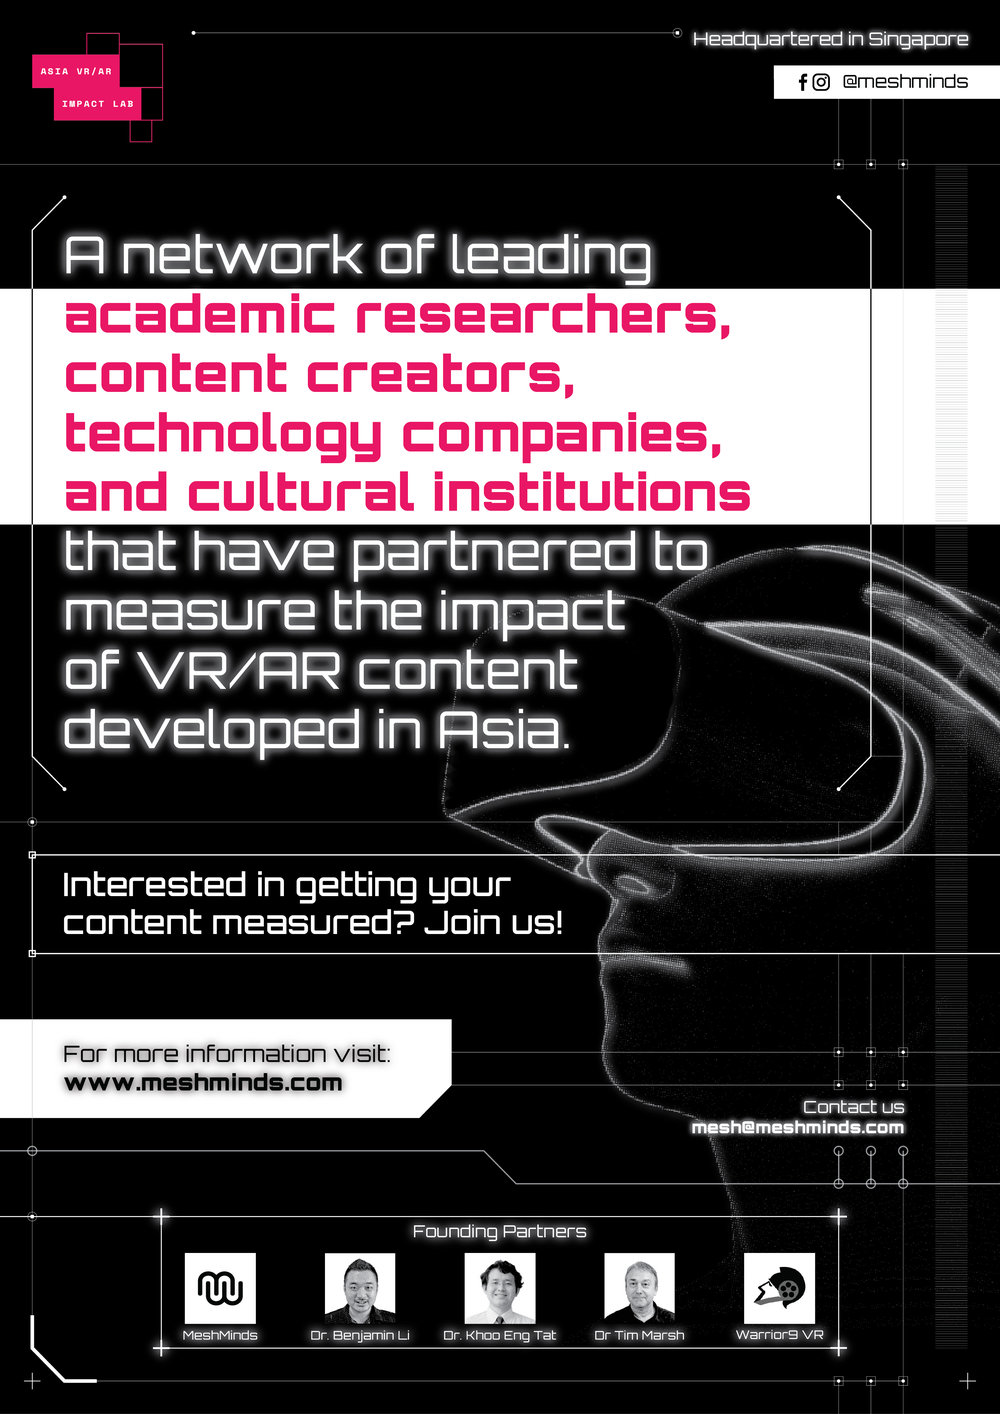 Asia VR/AR Impact Lab - Asia VR/AR Impact Lab is the Singapore-based not-for-profit research arm of The MeshMinds Foundation. We are a network of leading academic researchers, content creators, technology companies, impact investors, science museums, and cultural institutions based in Asia focused on measuring the impact of Asia VR/AR content. Our mission is understand the engagement, empathetic response and behavioural changes linked to VR/AR experiences focused on social, ecological, and economic challenges.Read more about about our research and development programmes.